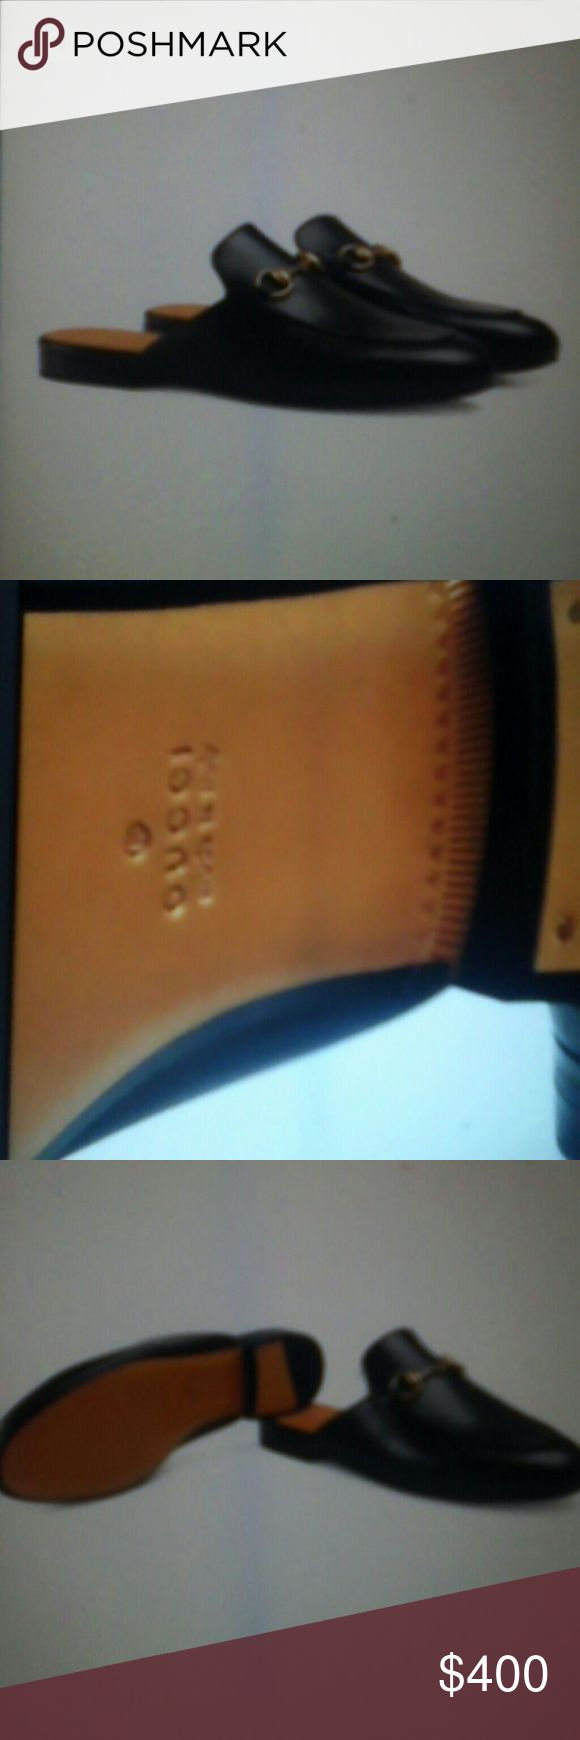 New authentic gucci mules black leather size USA 8 Brand new Gucci mules Gucci Shoes Mules & Clogs